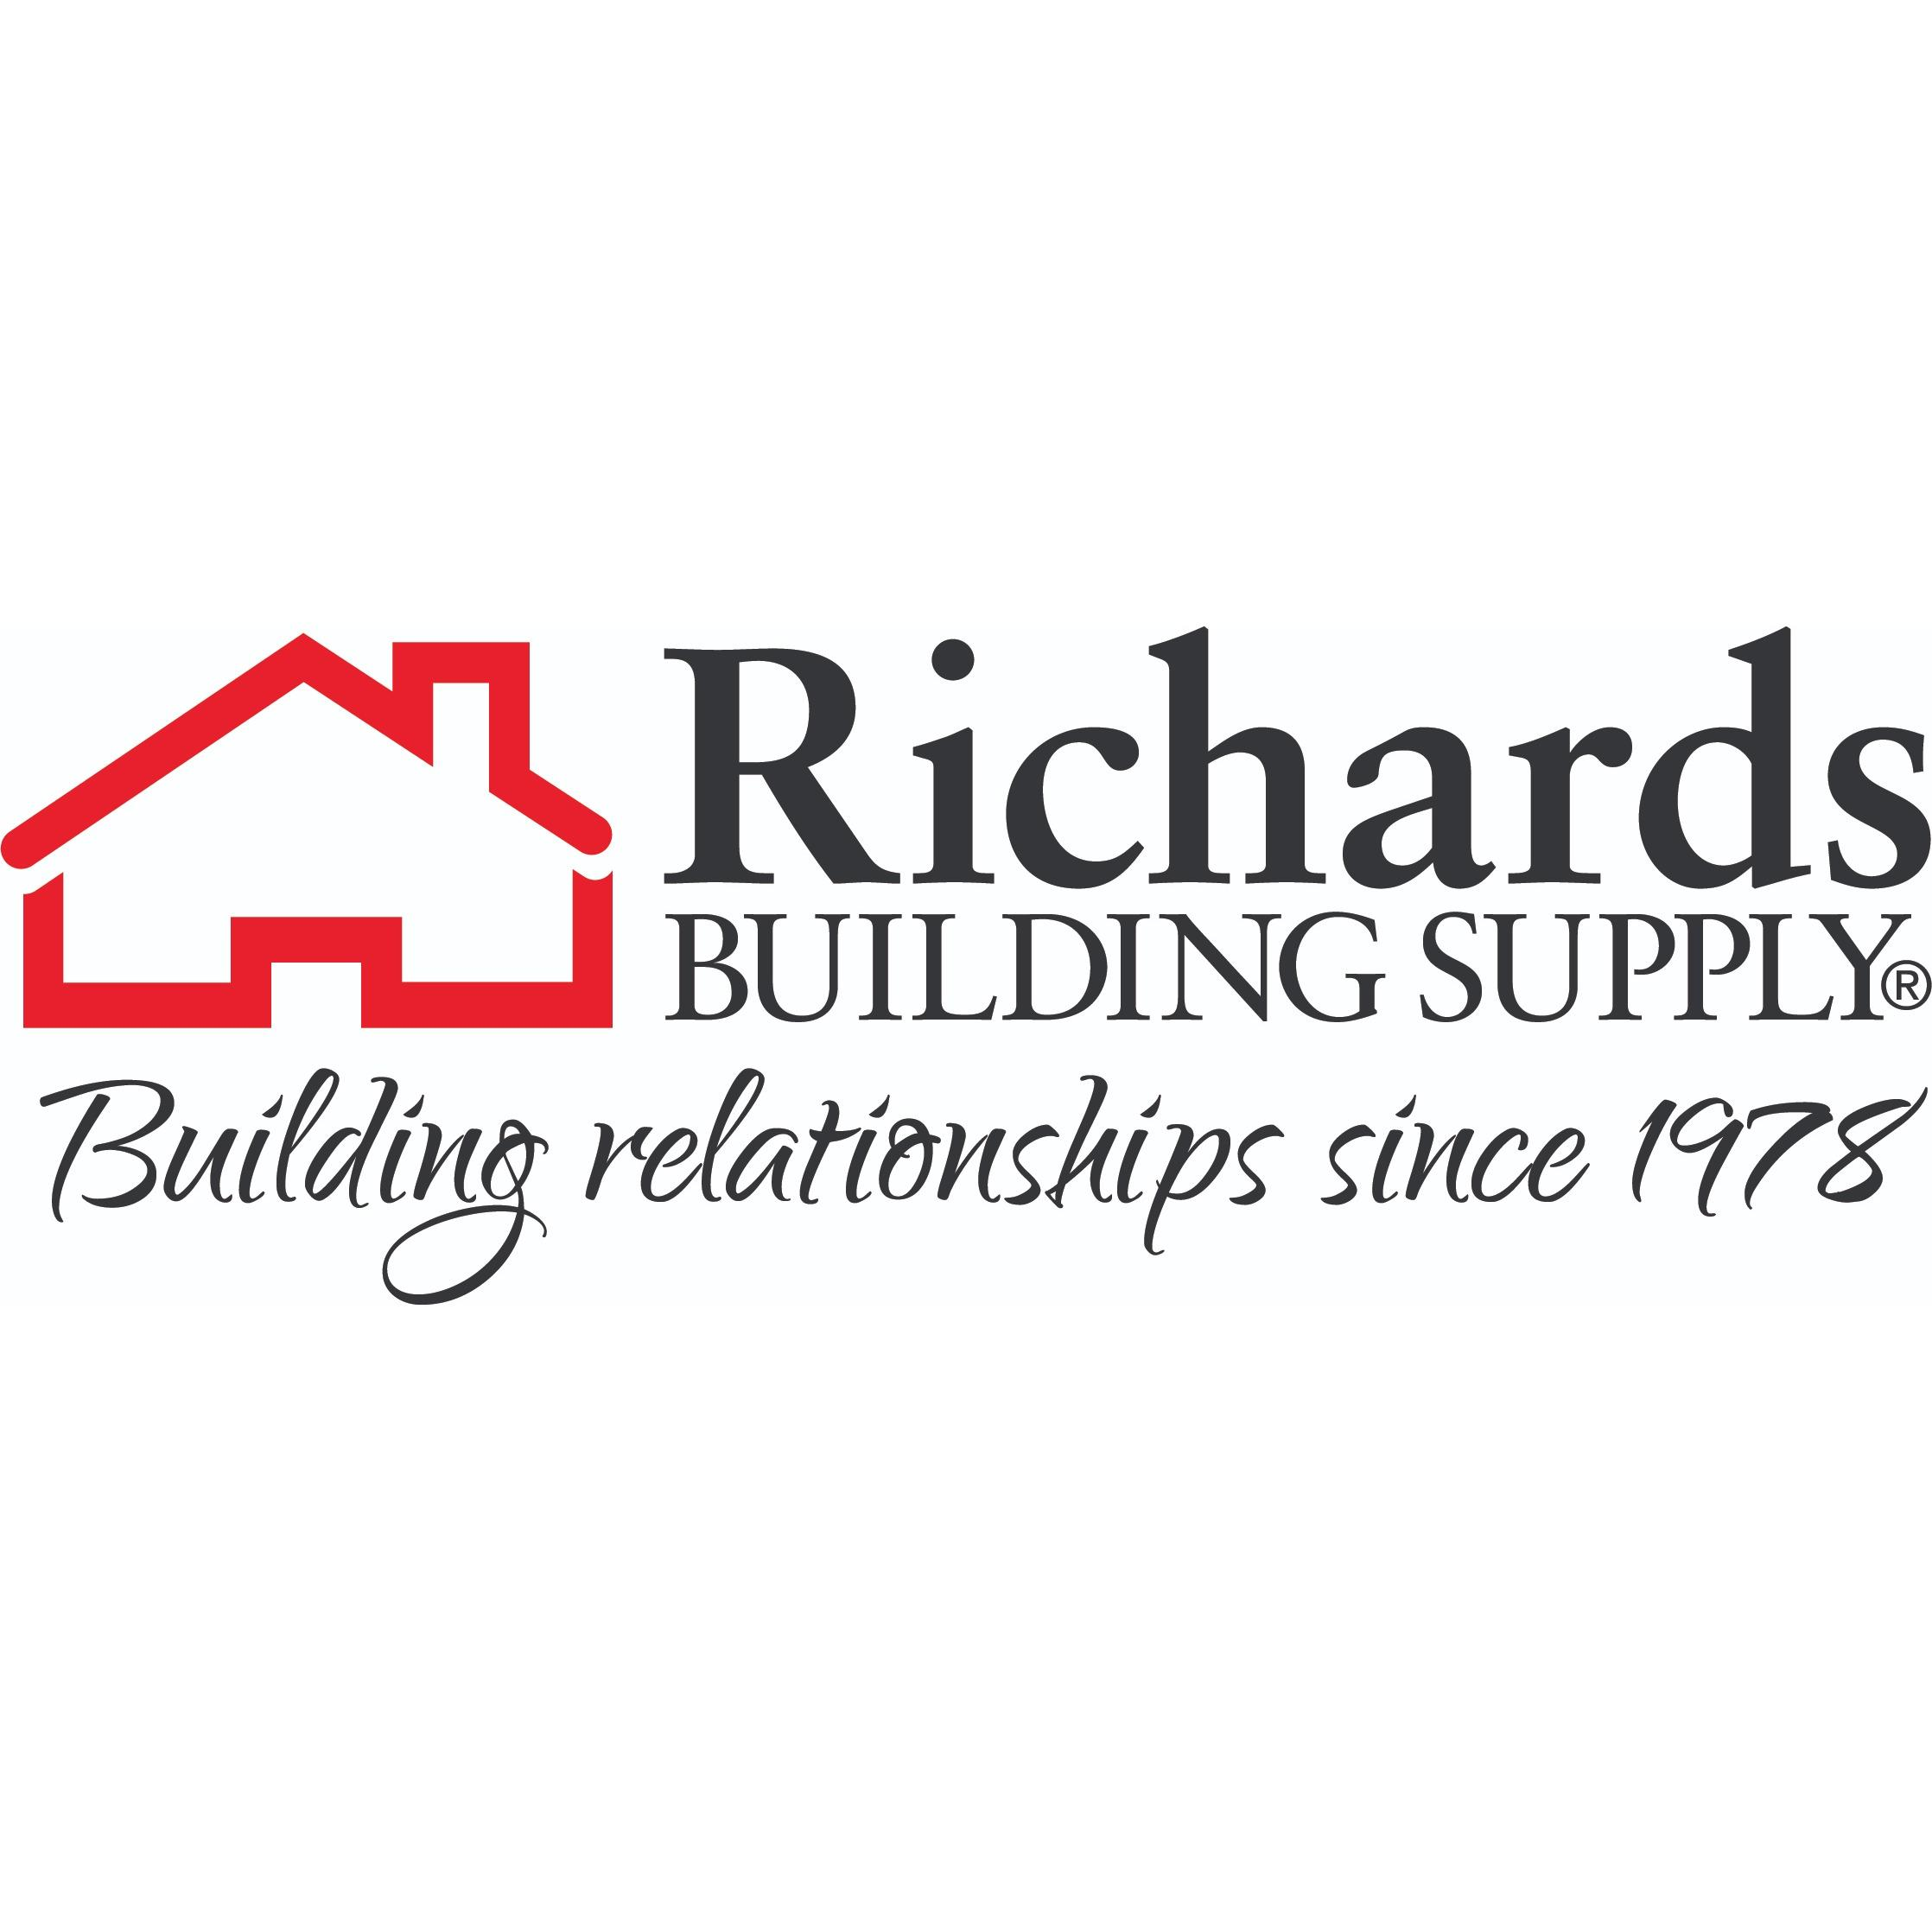 Richards Building Supply image 1